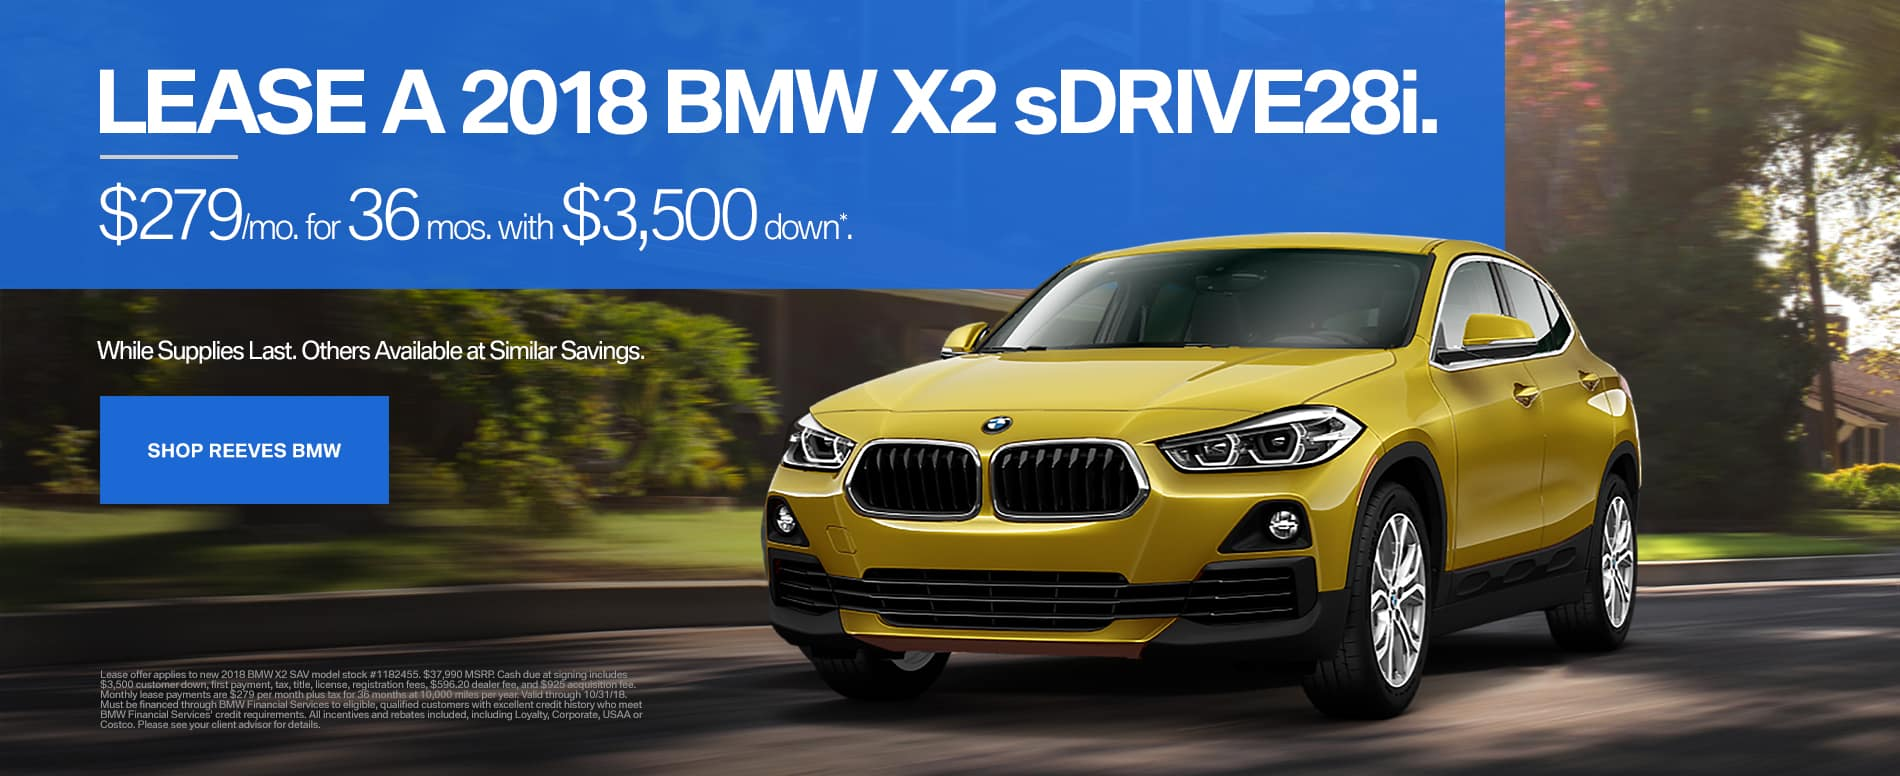 October BMW X2 Lease Special